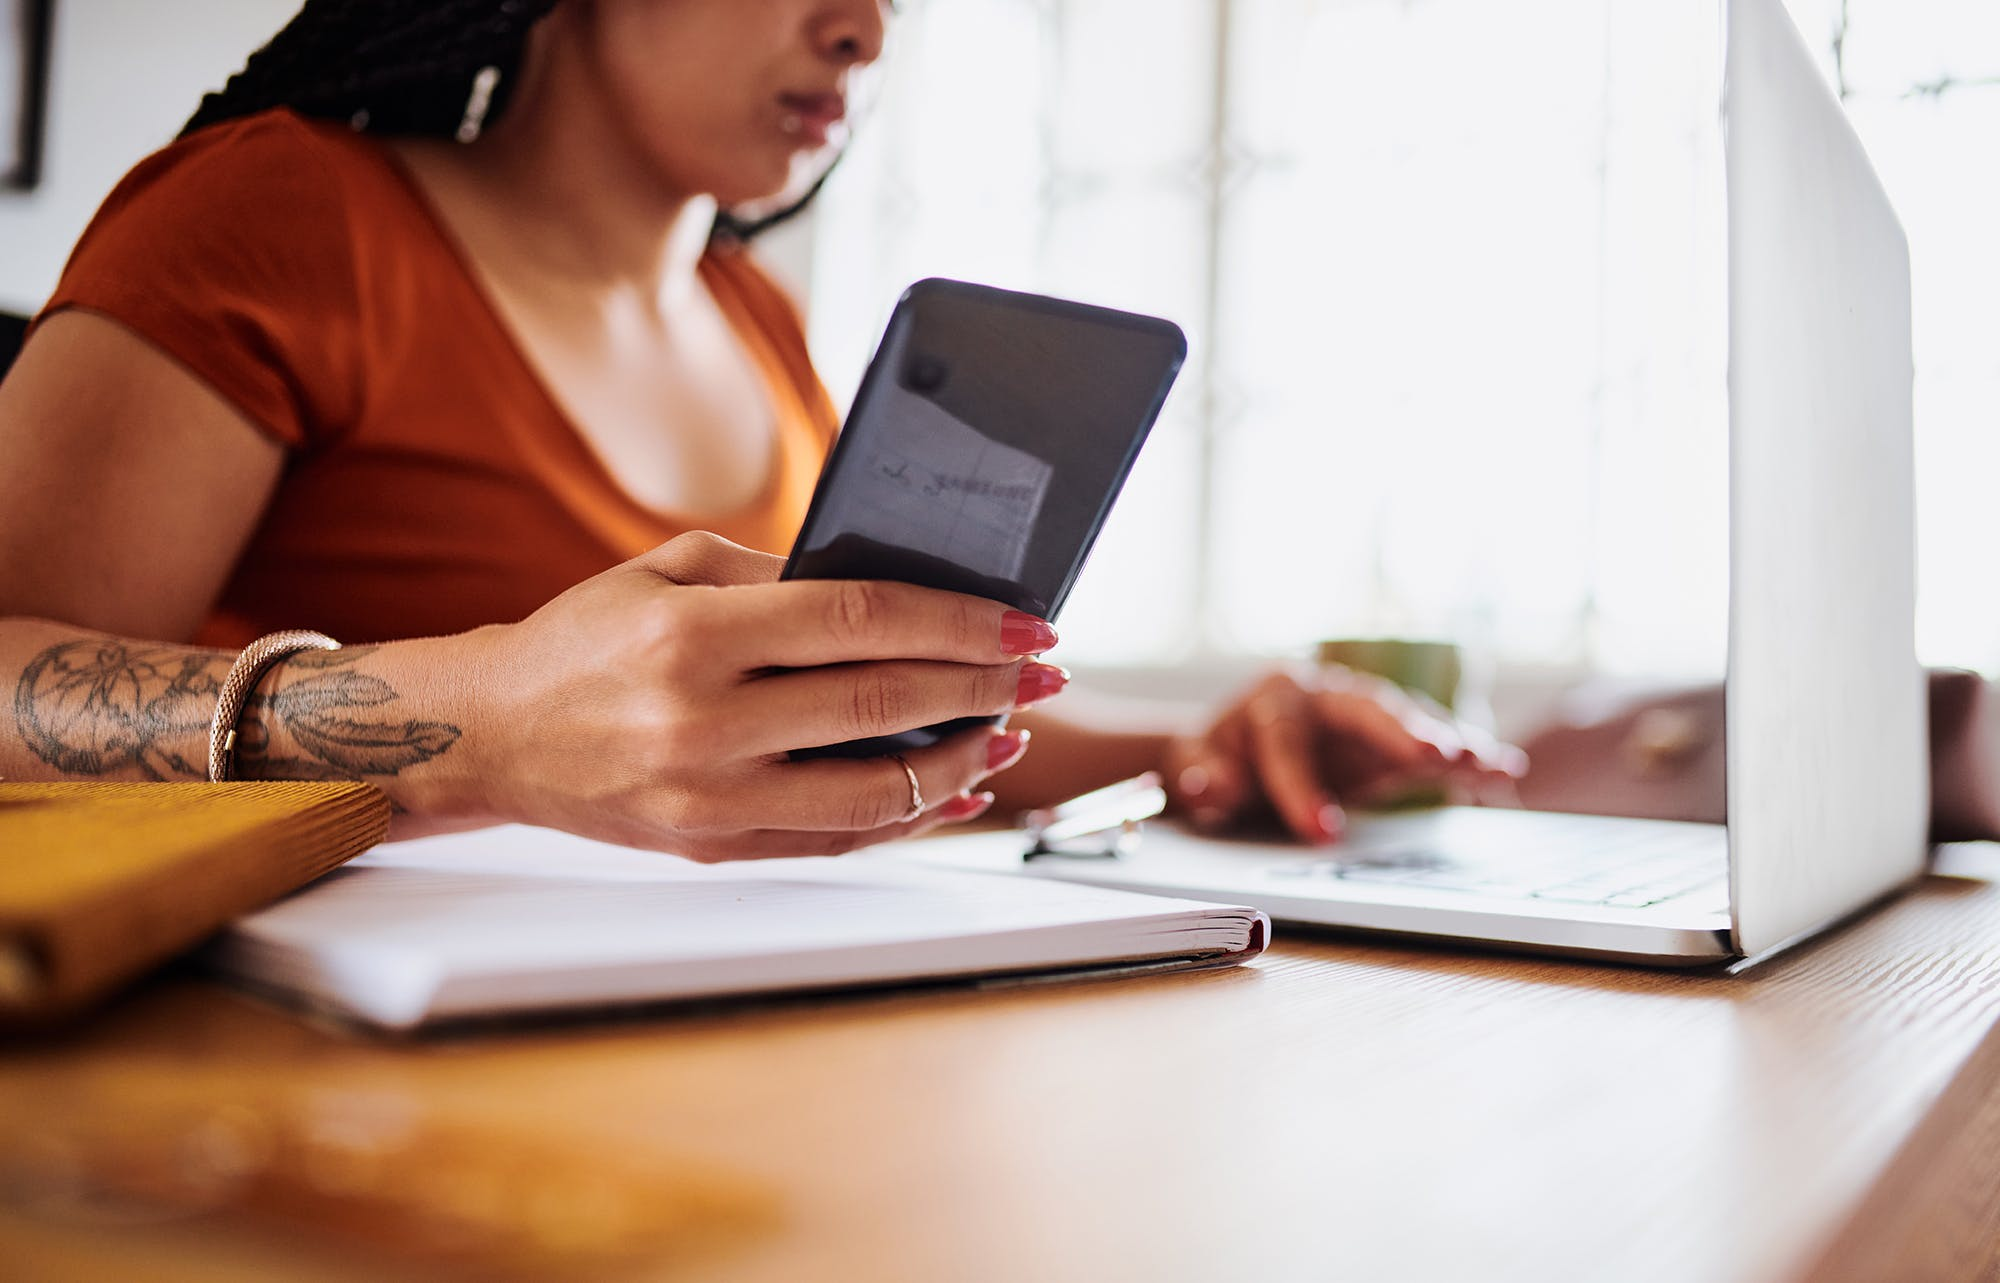 Woman working from home on her laptop and phone